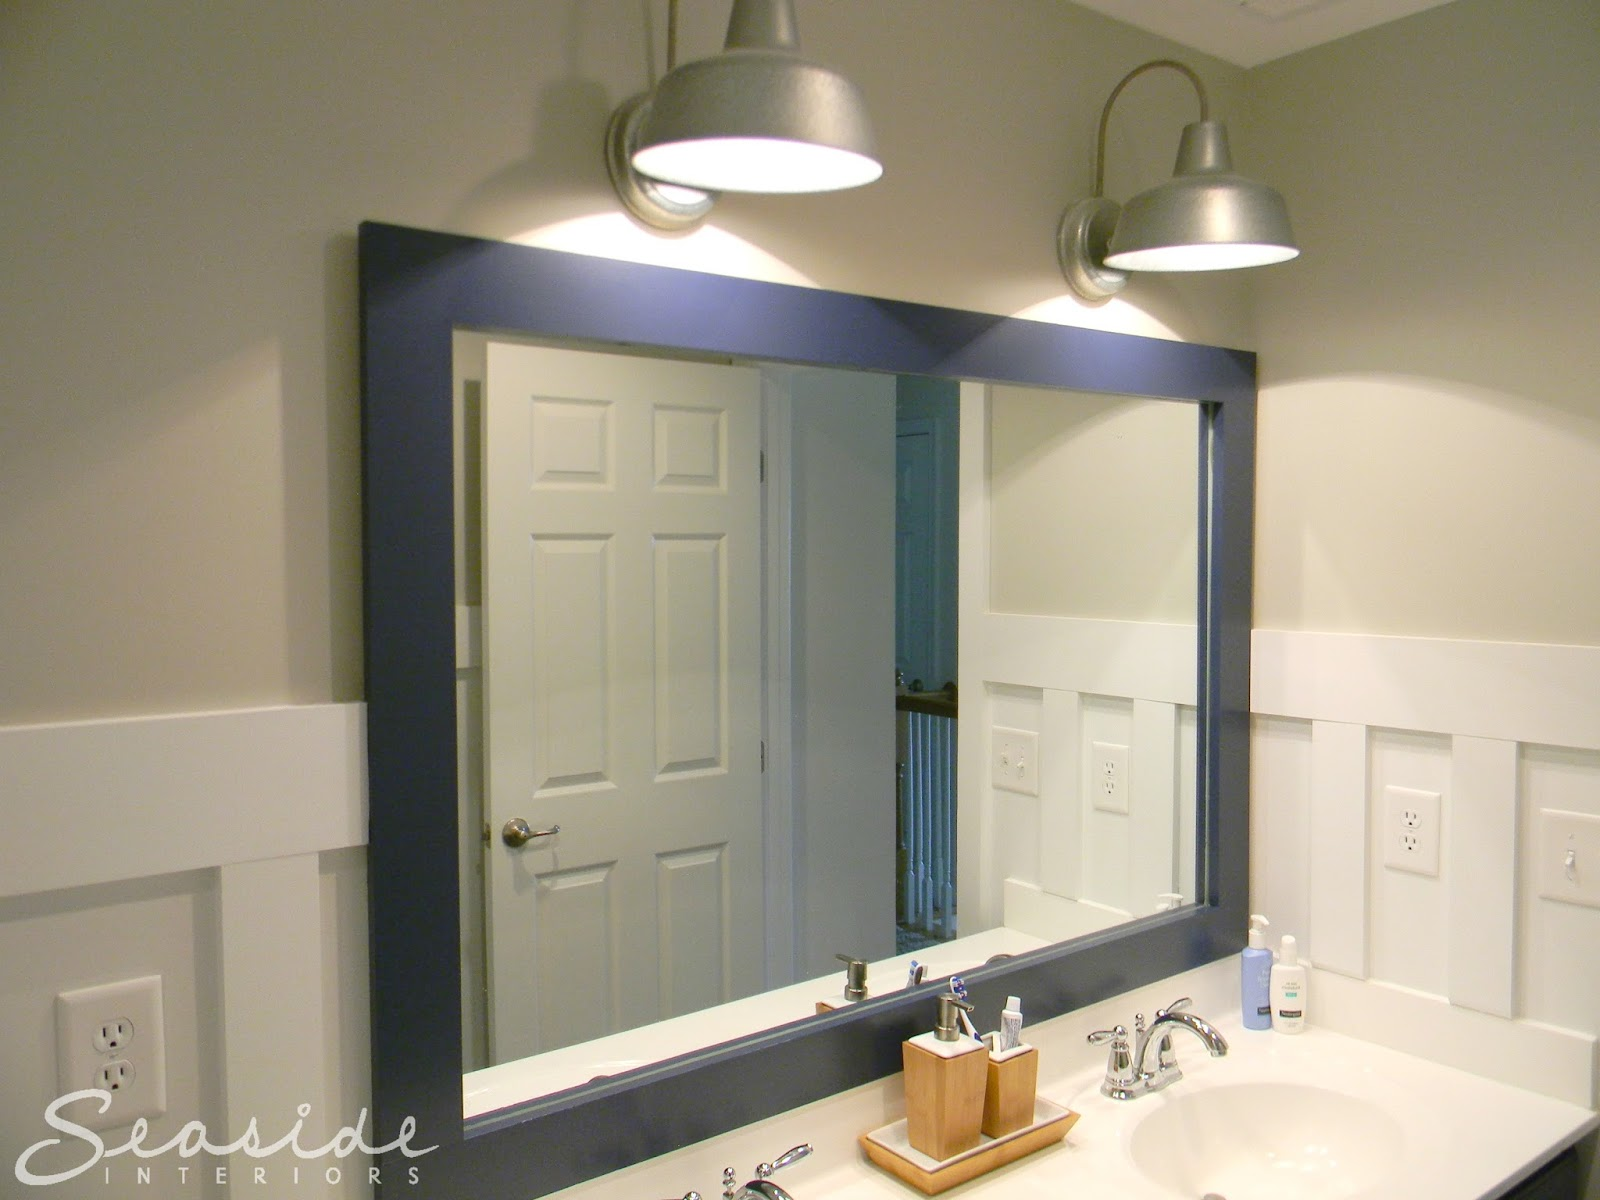 Nautical Bathroom Light Fixture: Seaside Interiors: Kids Nautical Bathroom Reveal